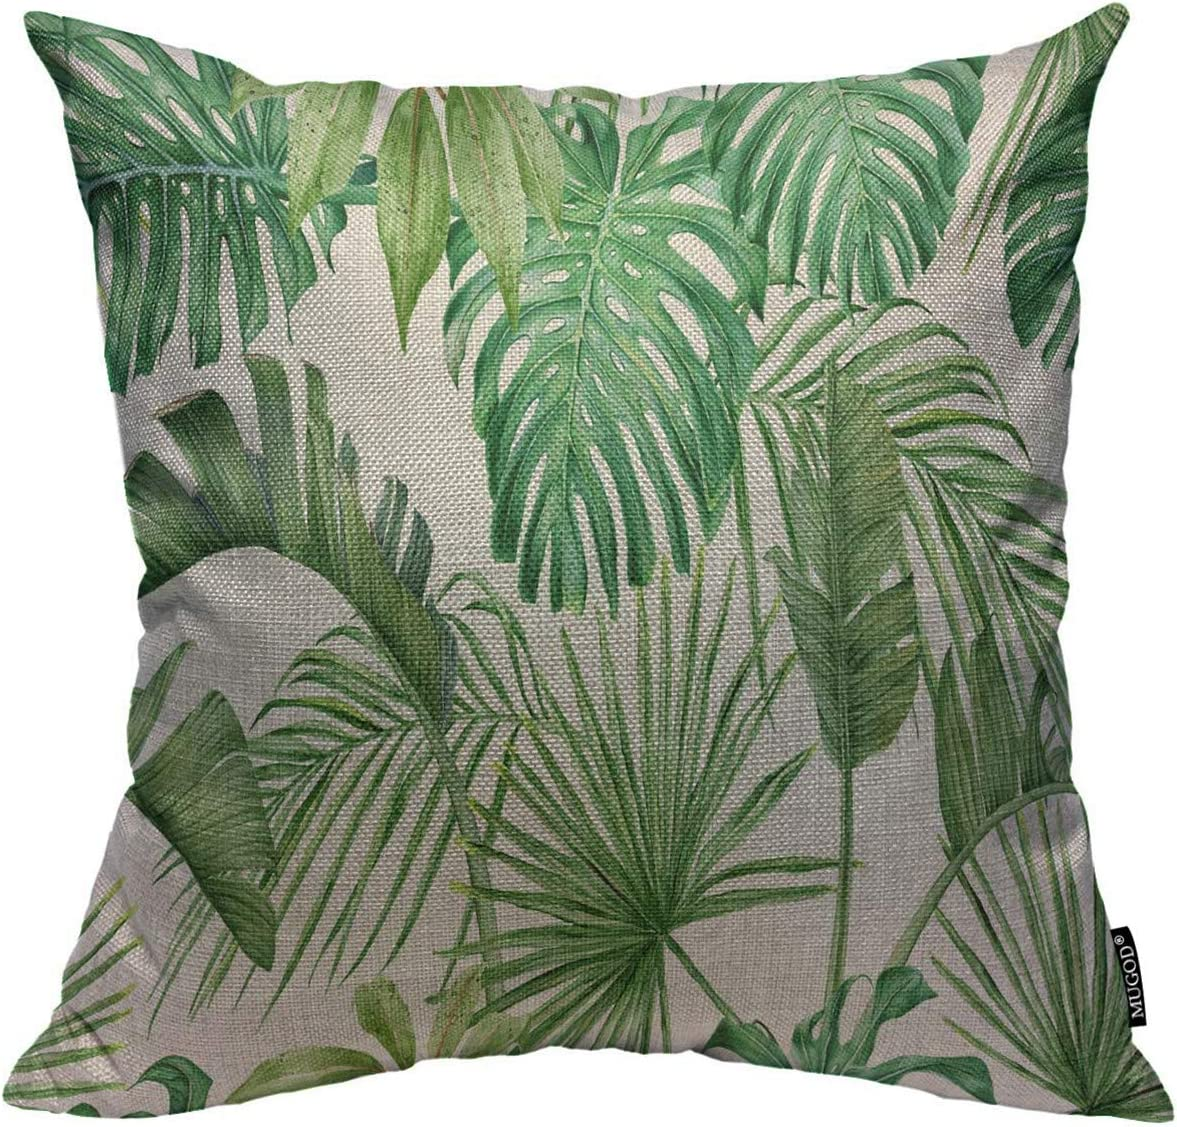 Mugod Throw Pillow Cover Green Leaf Tropical Leaves Monstera Strelitzia Palms Watercolor Frond Holiday Home Decor Square Pillow Case for Men Women Bedroom Cushion Cover 18x18 Inch